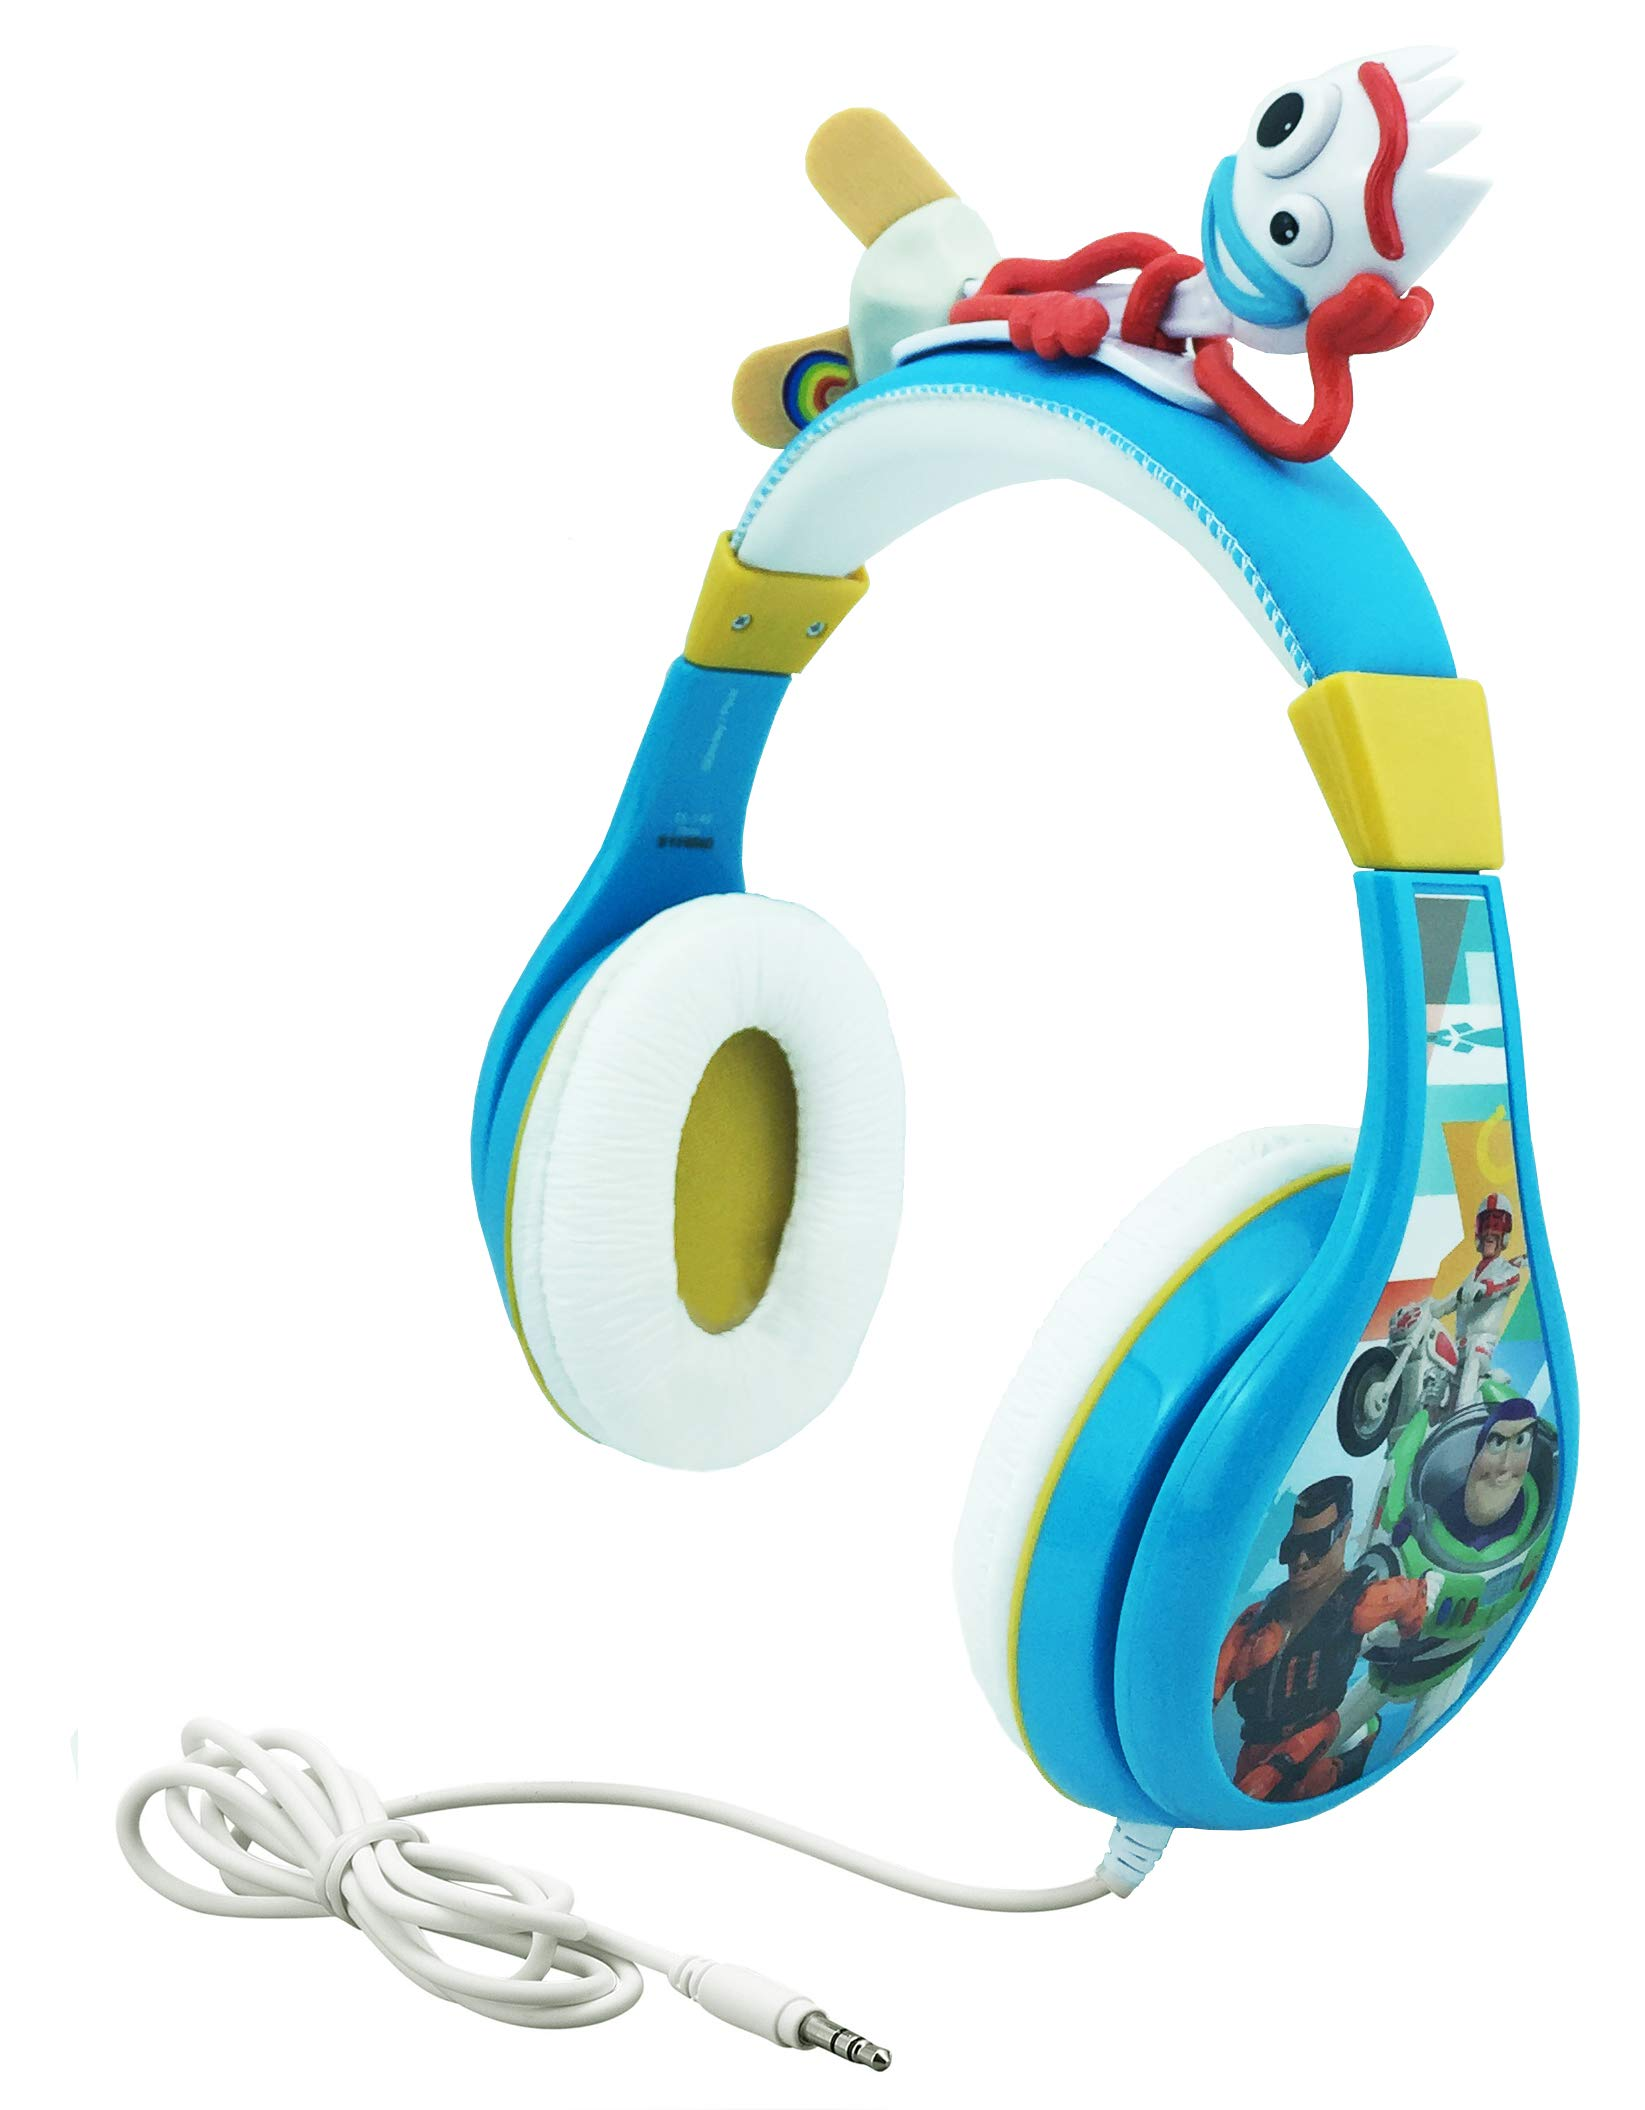 Kids Headphones for Kids Toy Story 4 Forky Adjustable Stereo Tangle-Free 3.5mm Jack Wired Cord Over Ear Headset for Children Parental Volume Control Kid Friendly Safe Perfect for School Home Travel by eKids